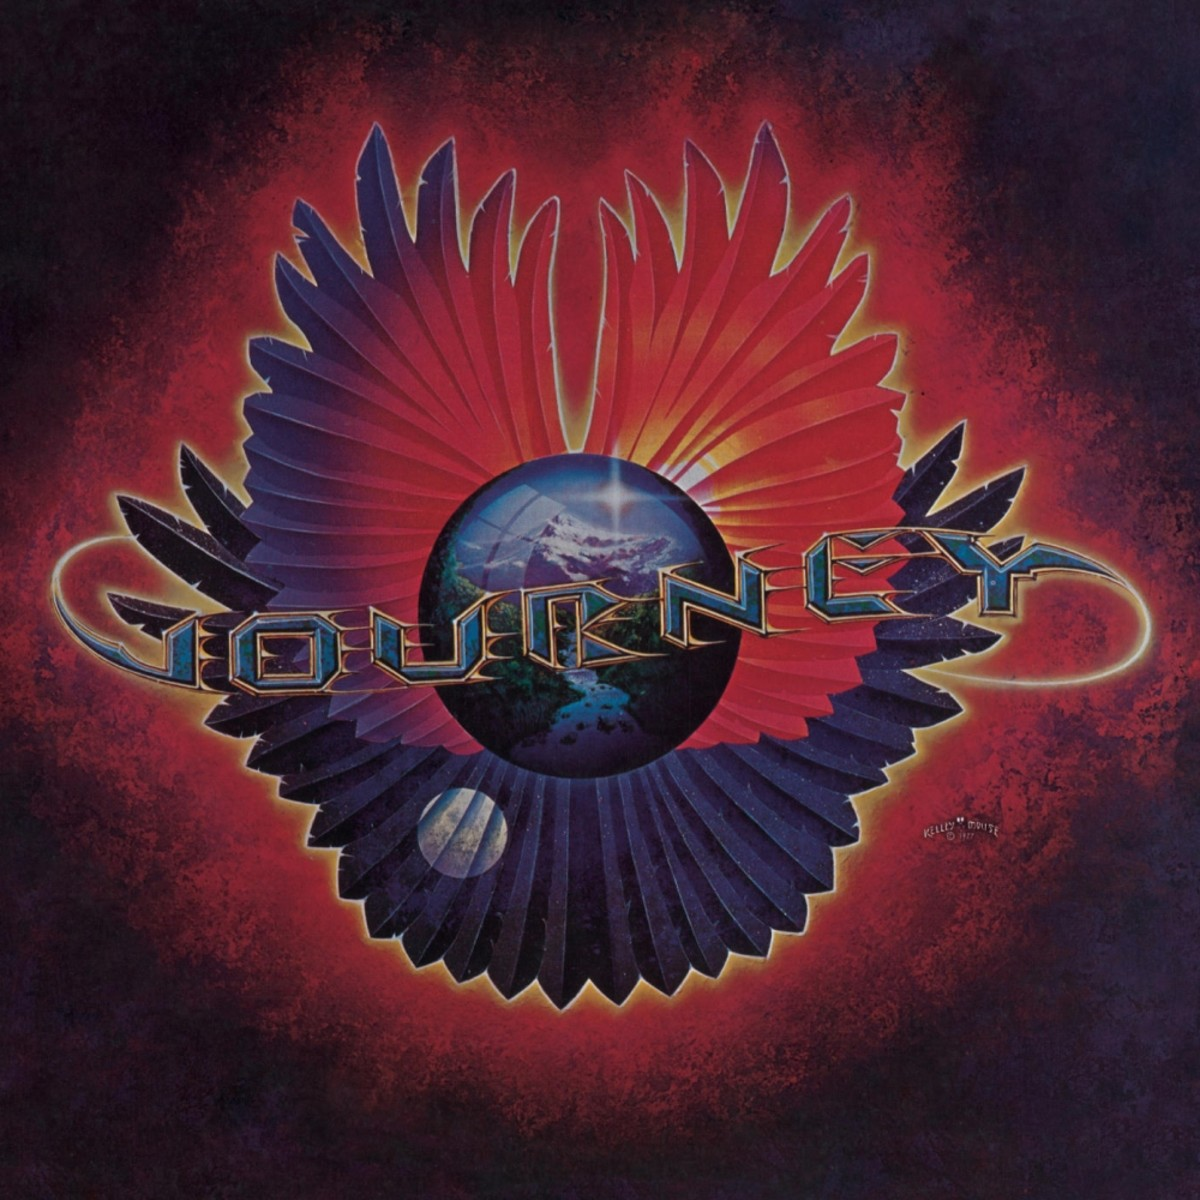 """Journey """"Infinity"""" Columbia Records 12"""" LP Vinyl Record US Pressing (1978) Album Cover Art by Alton Kelley & Stanley Mouse"""